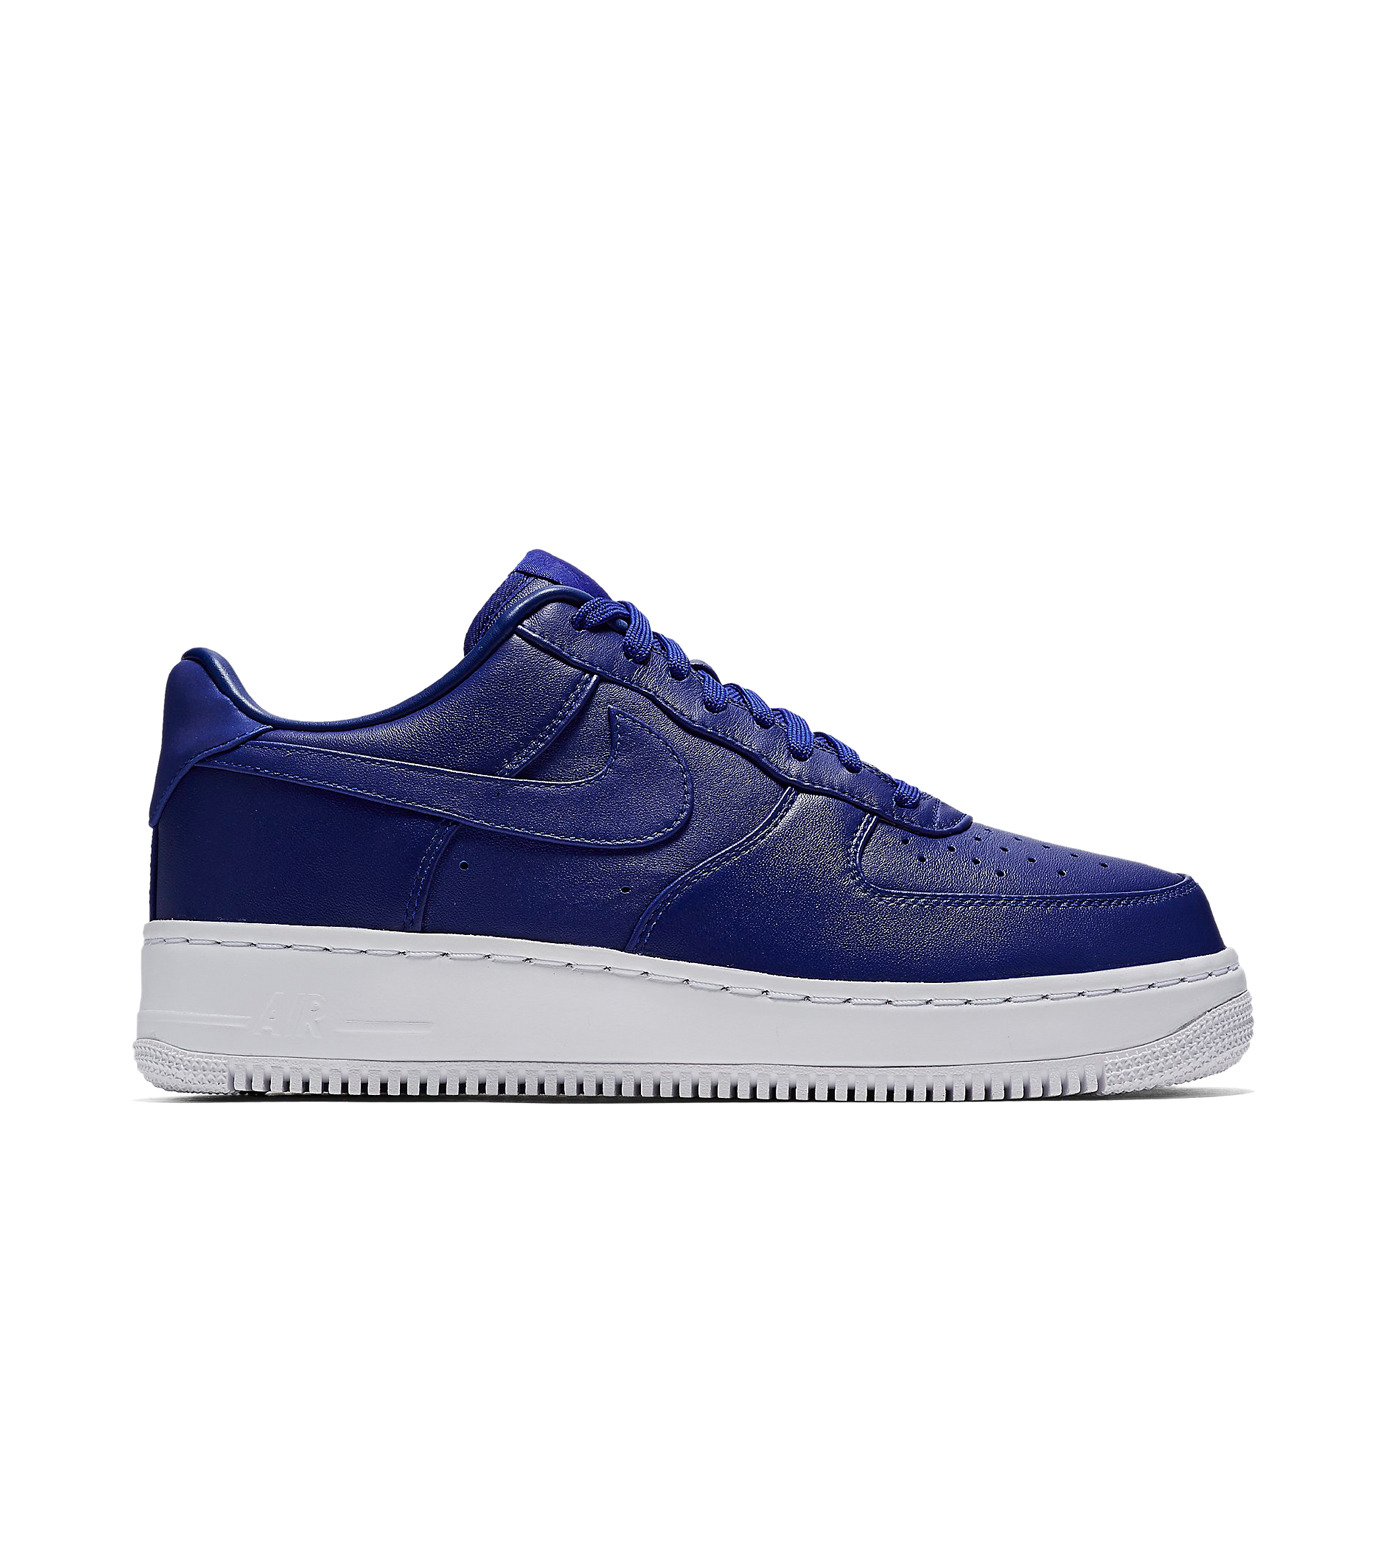 NIKE(ナイキ)のAIR FORCE 1 LOW-BLUE(シューズ/shoes)-555106-402-92 拡大詳細画像1